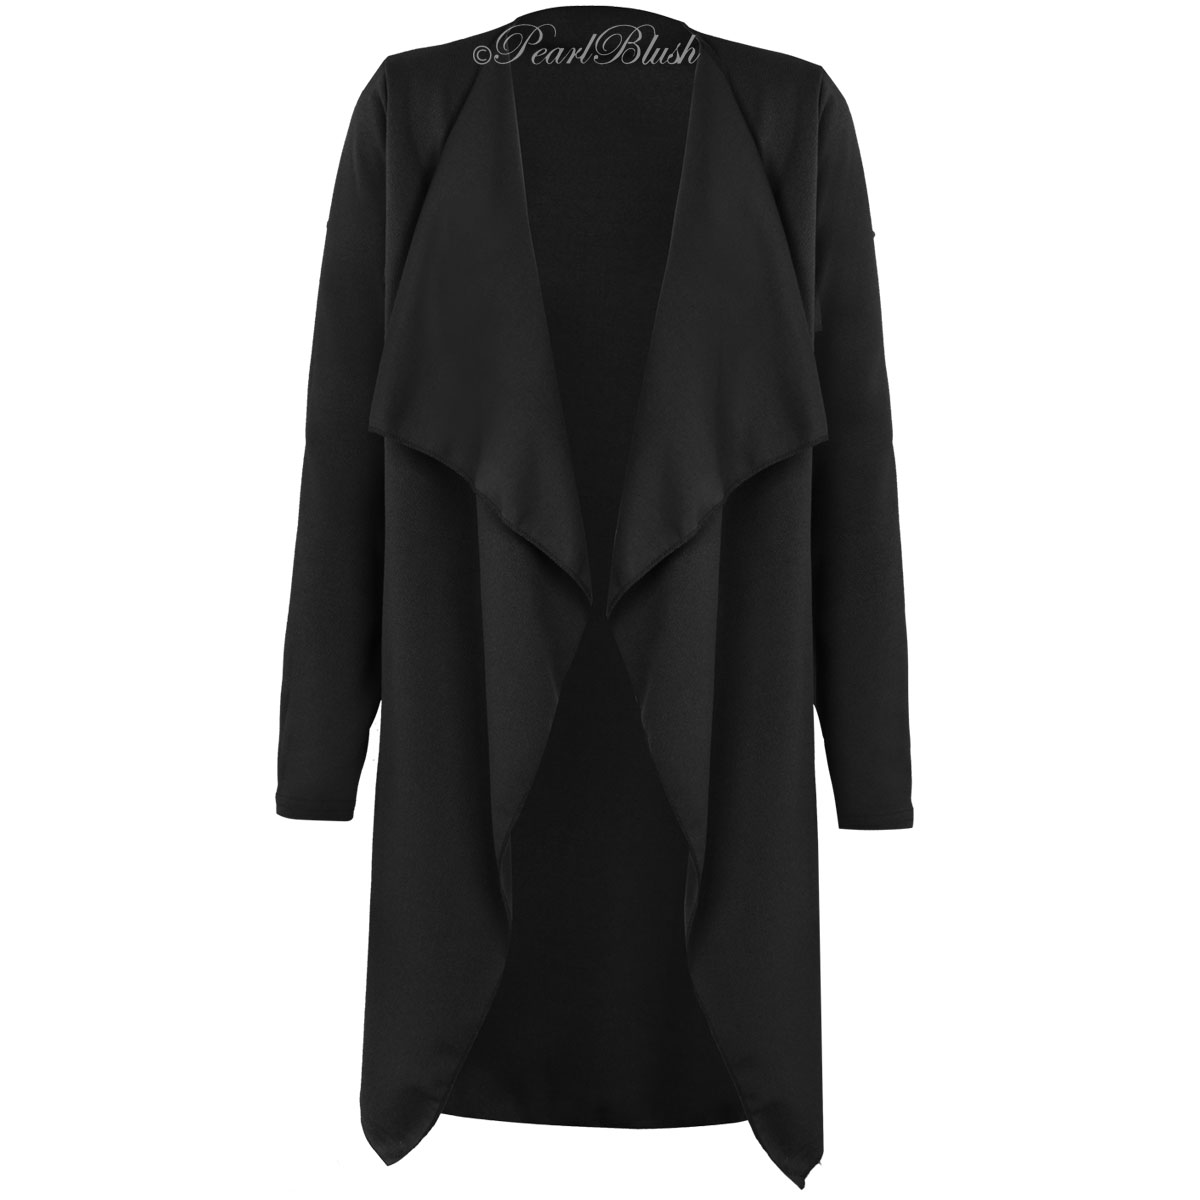 WOMENS LADIES LONG SLEEVE OPEN FRONT WATERFALL CARDIGAN JACKET ...